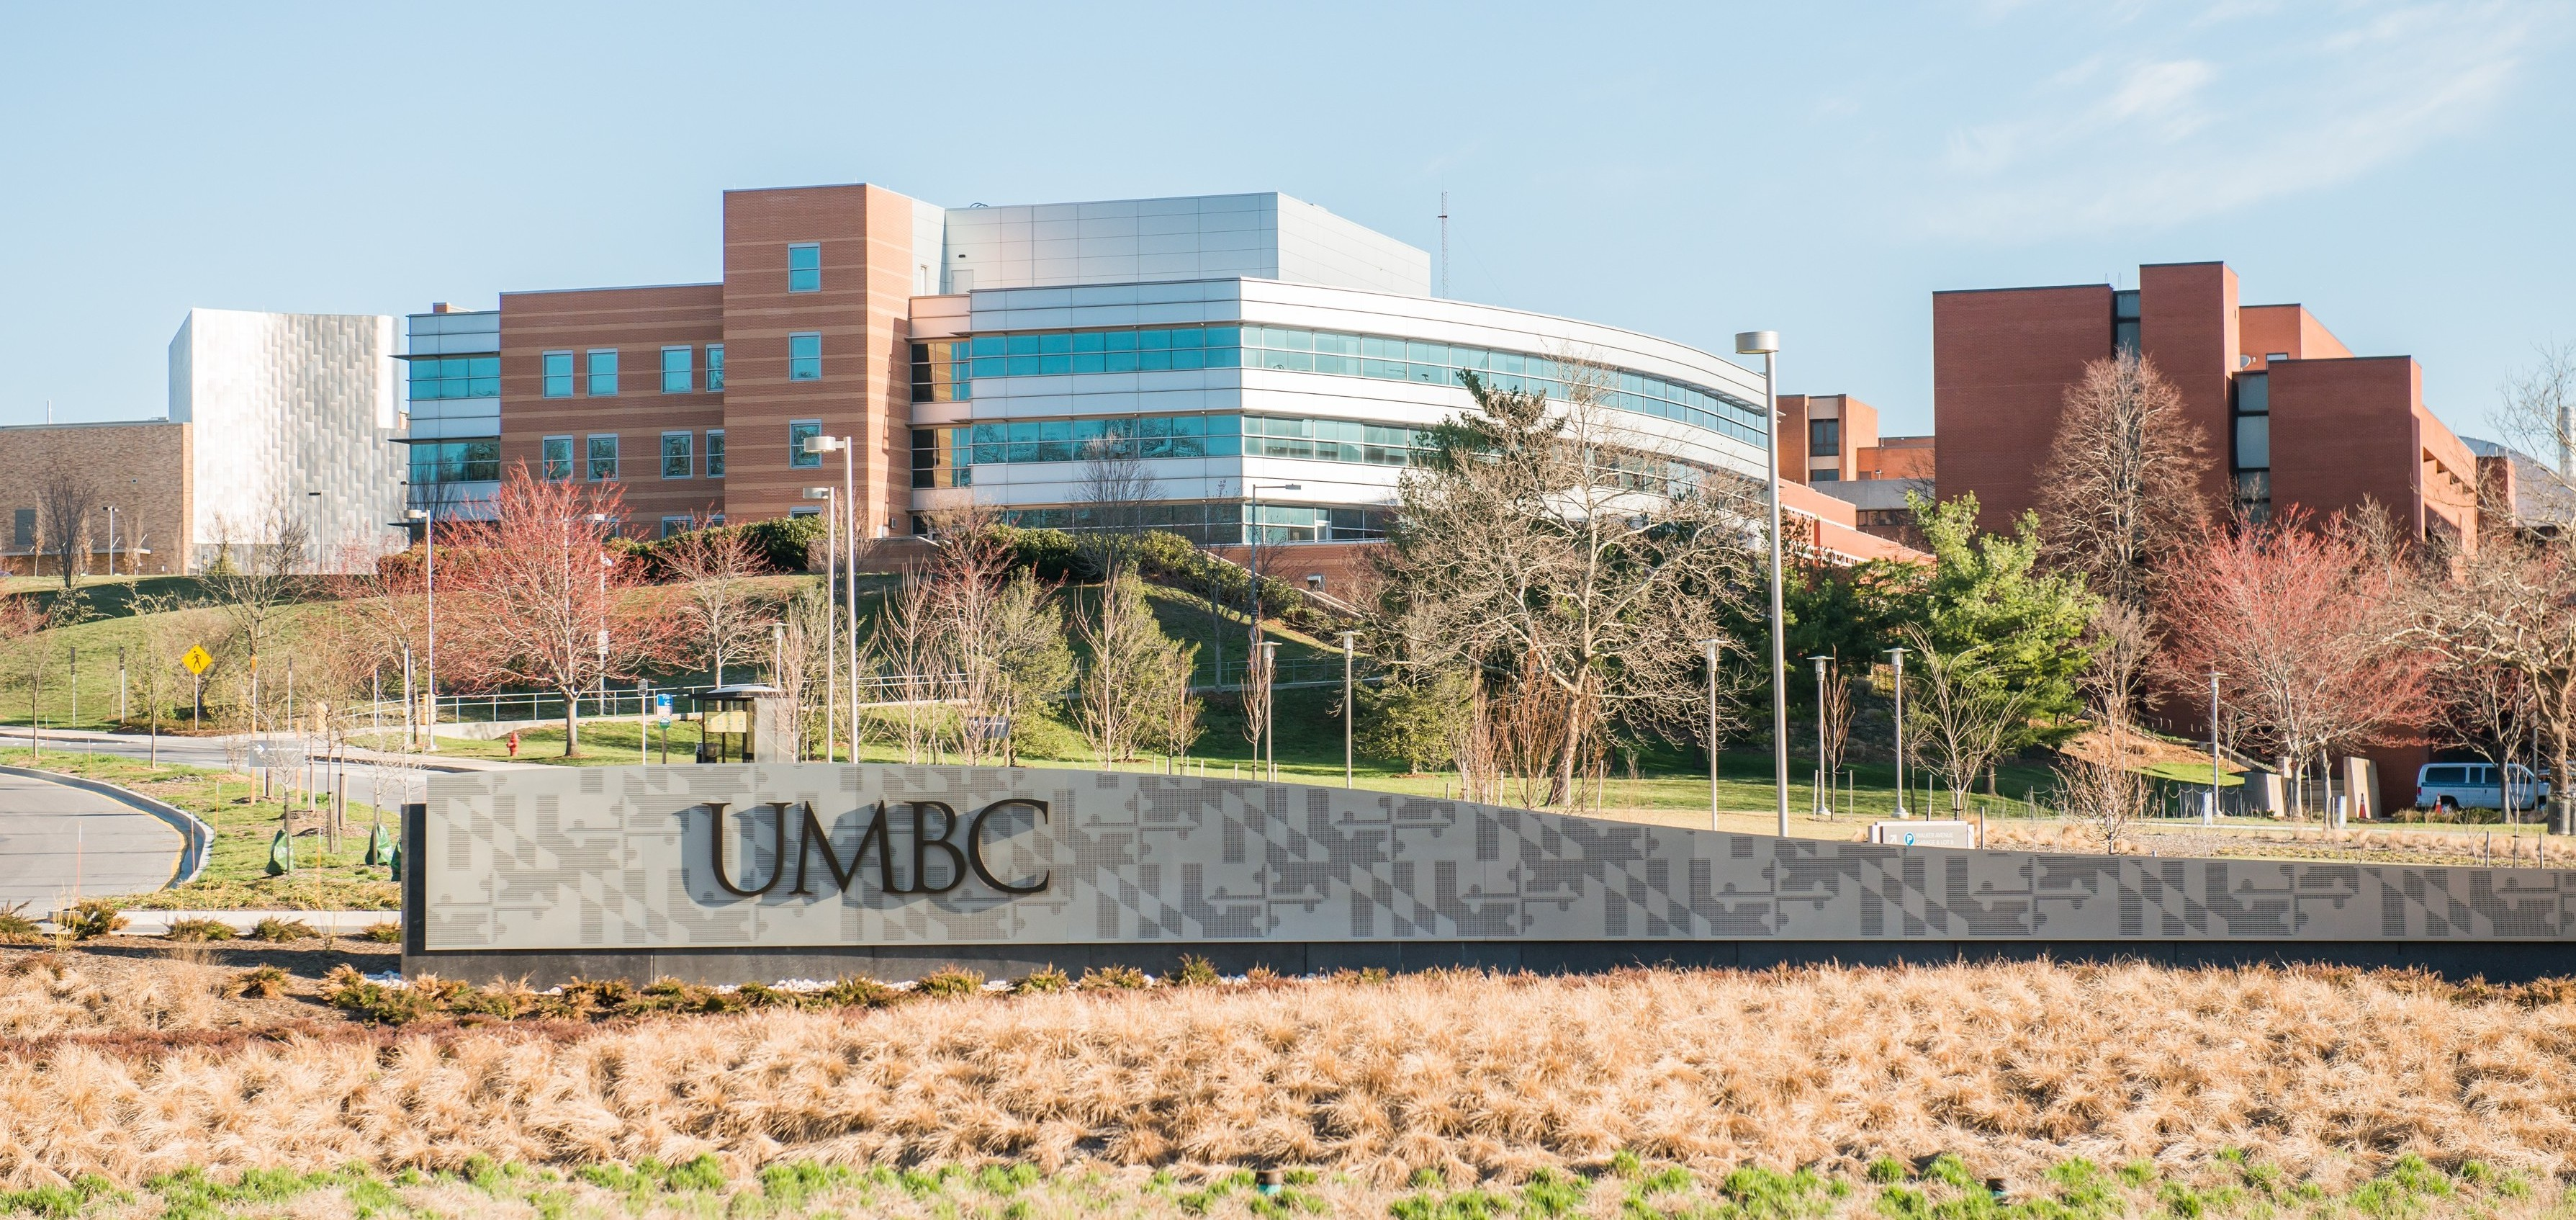 Income Mobility >> U.S. Dept. of Ed recognizes UMBC as a leader in supporting low-income students – UMBC NEWS